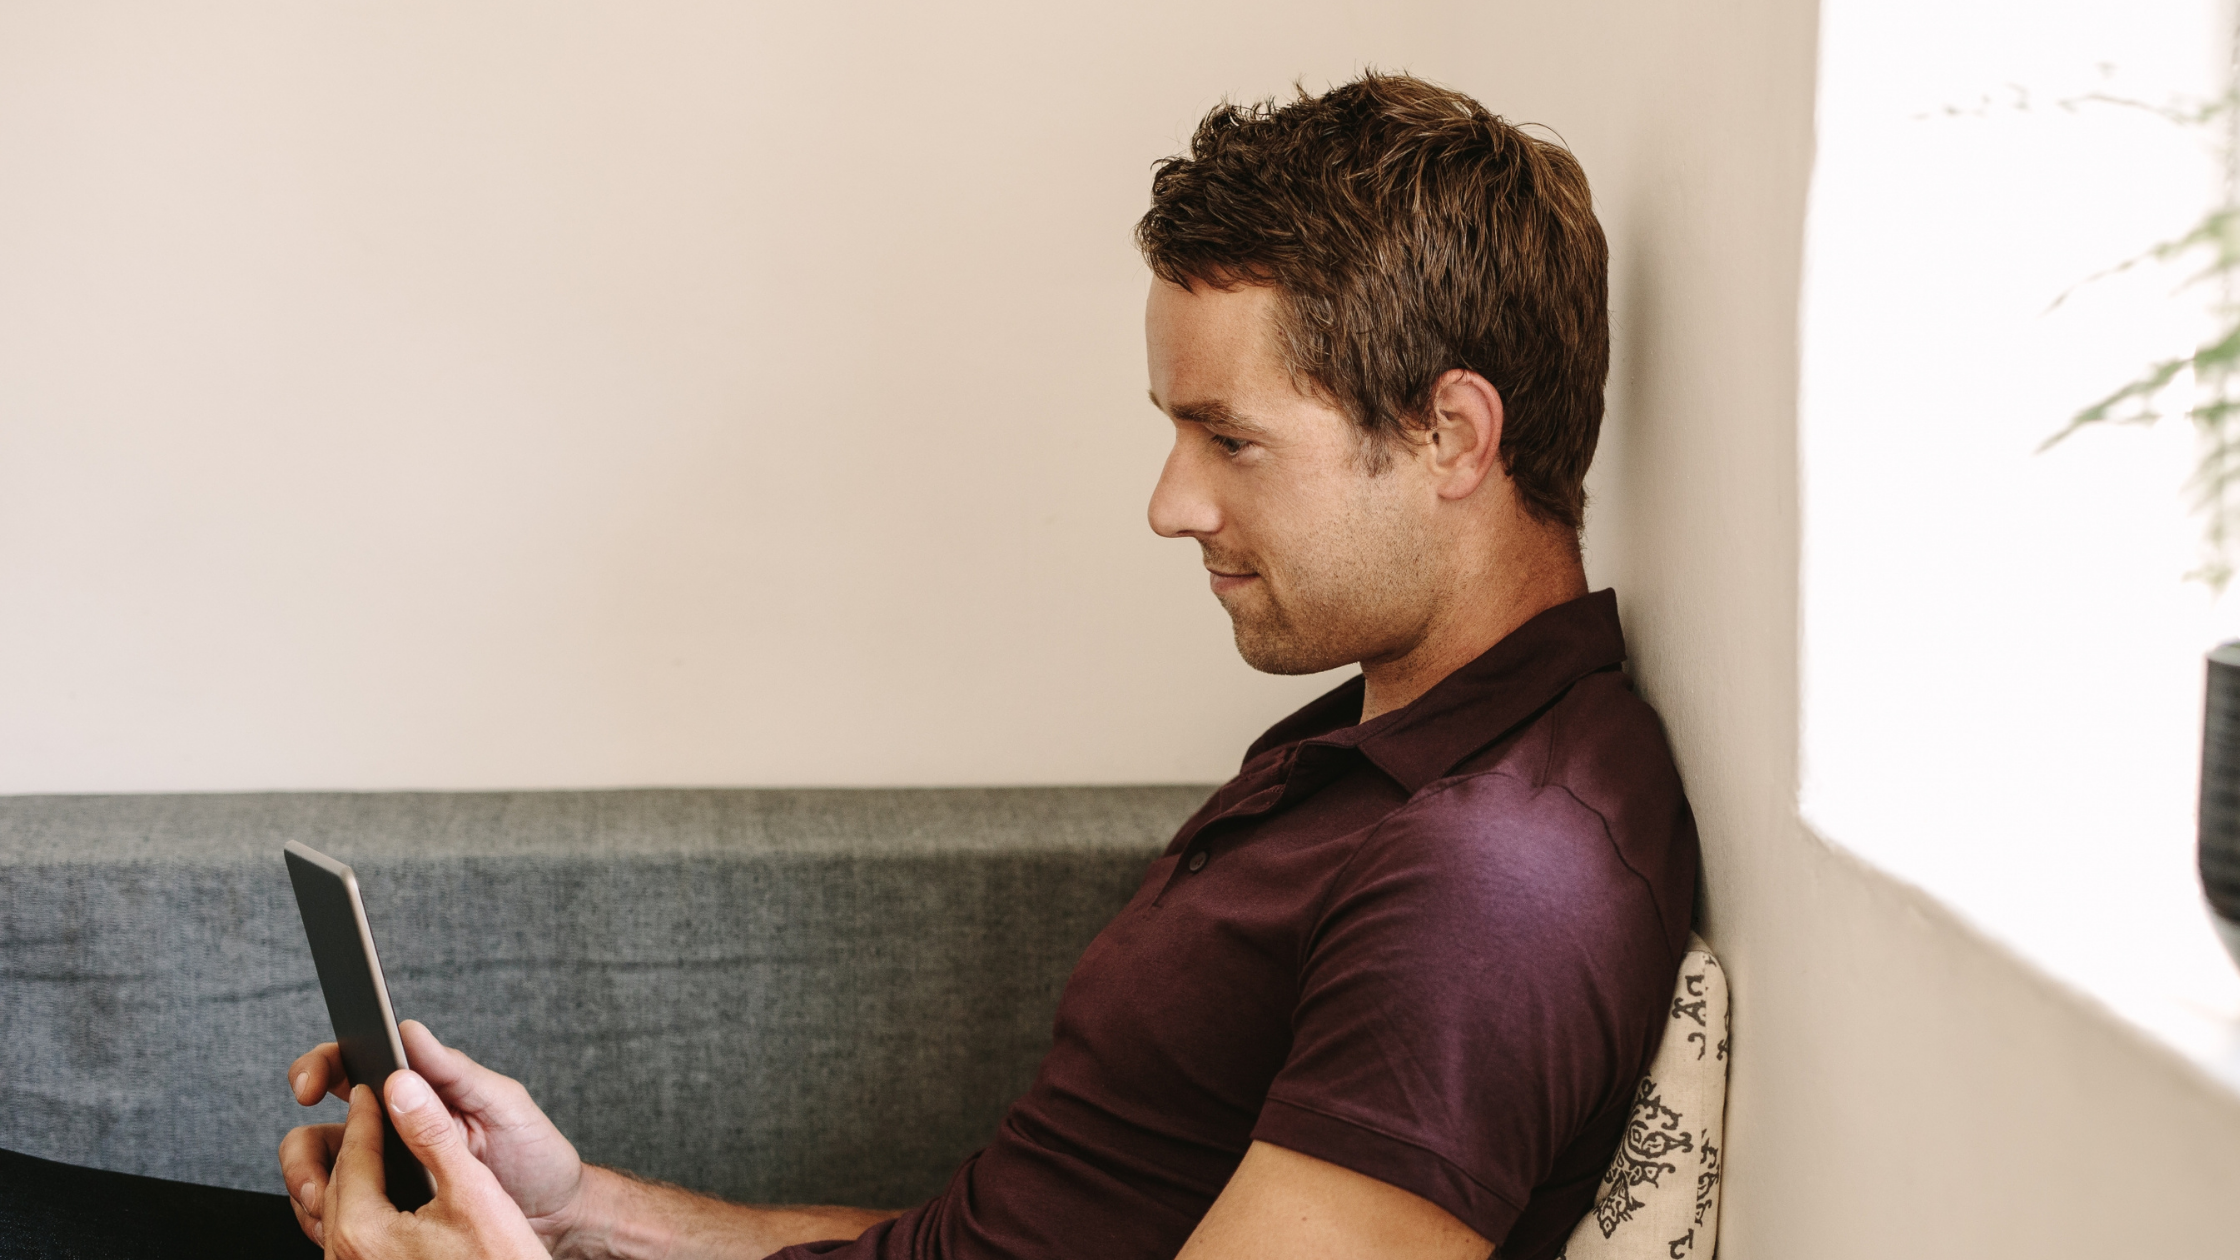 A man in his 30s with short light brown hair and stubble. He is wearing a plum polo shirt sitting on a couch looking at his phone.